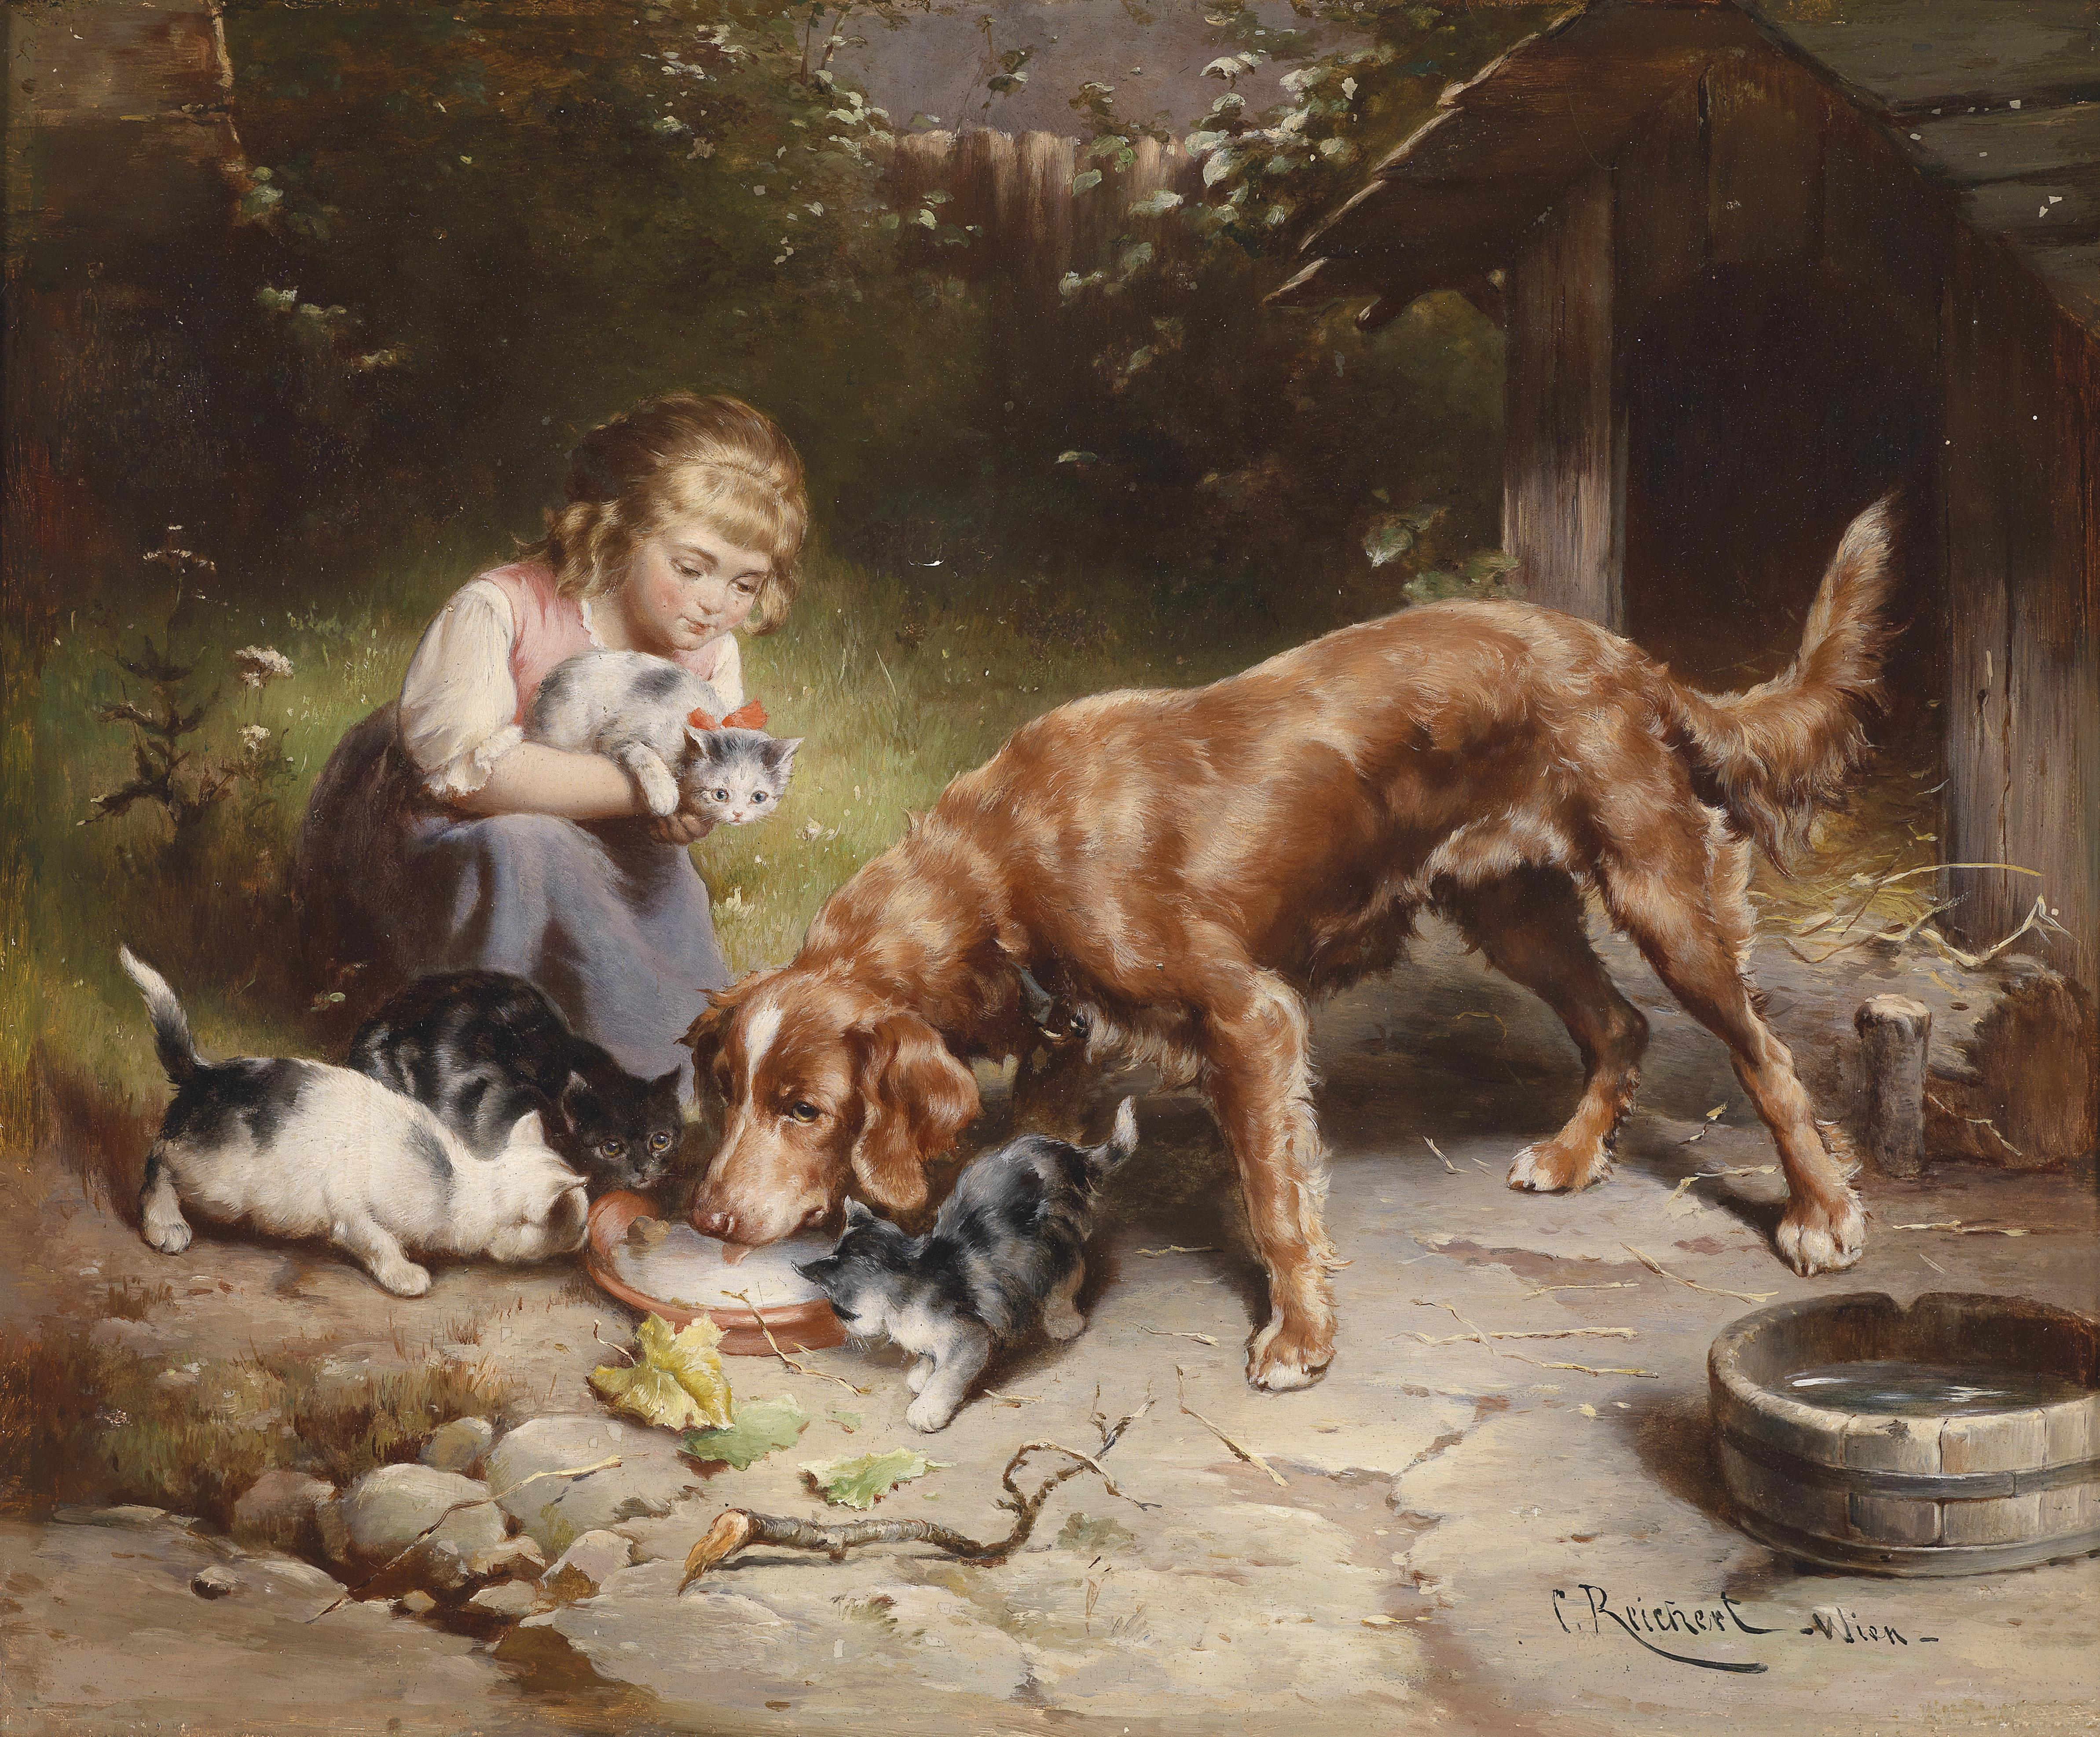 Public Domain Images Cats And Dogs Eating